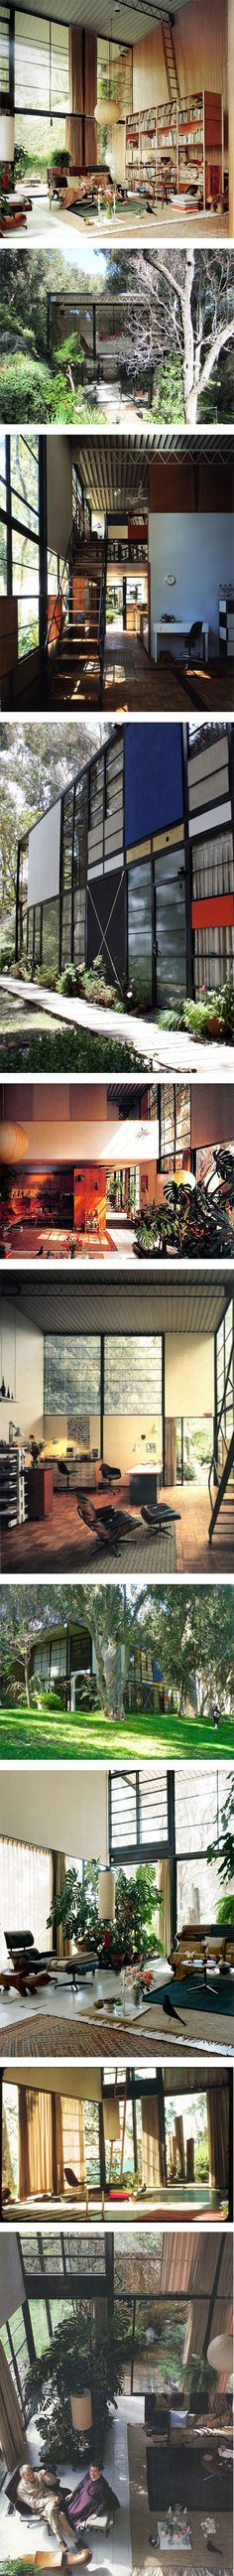 """Genius, nothing, we just worked harder"" – Charles Eames on Nuji … Charles Eames, Classic Architecture, Interior Architecture, Exterior Design, Interior And Exterior, Visualisation, Mid Century Modern Design, Bungalow, Mid-century Modern"